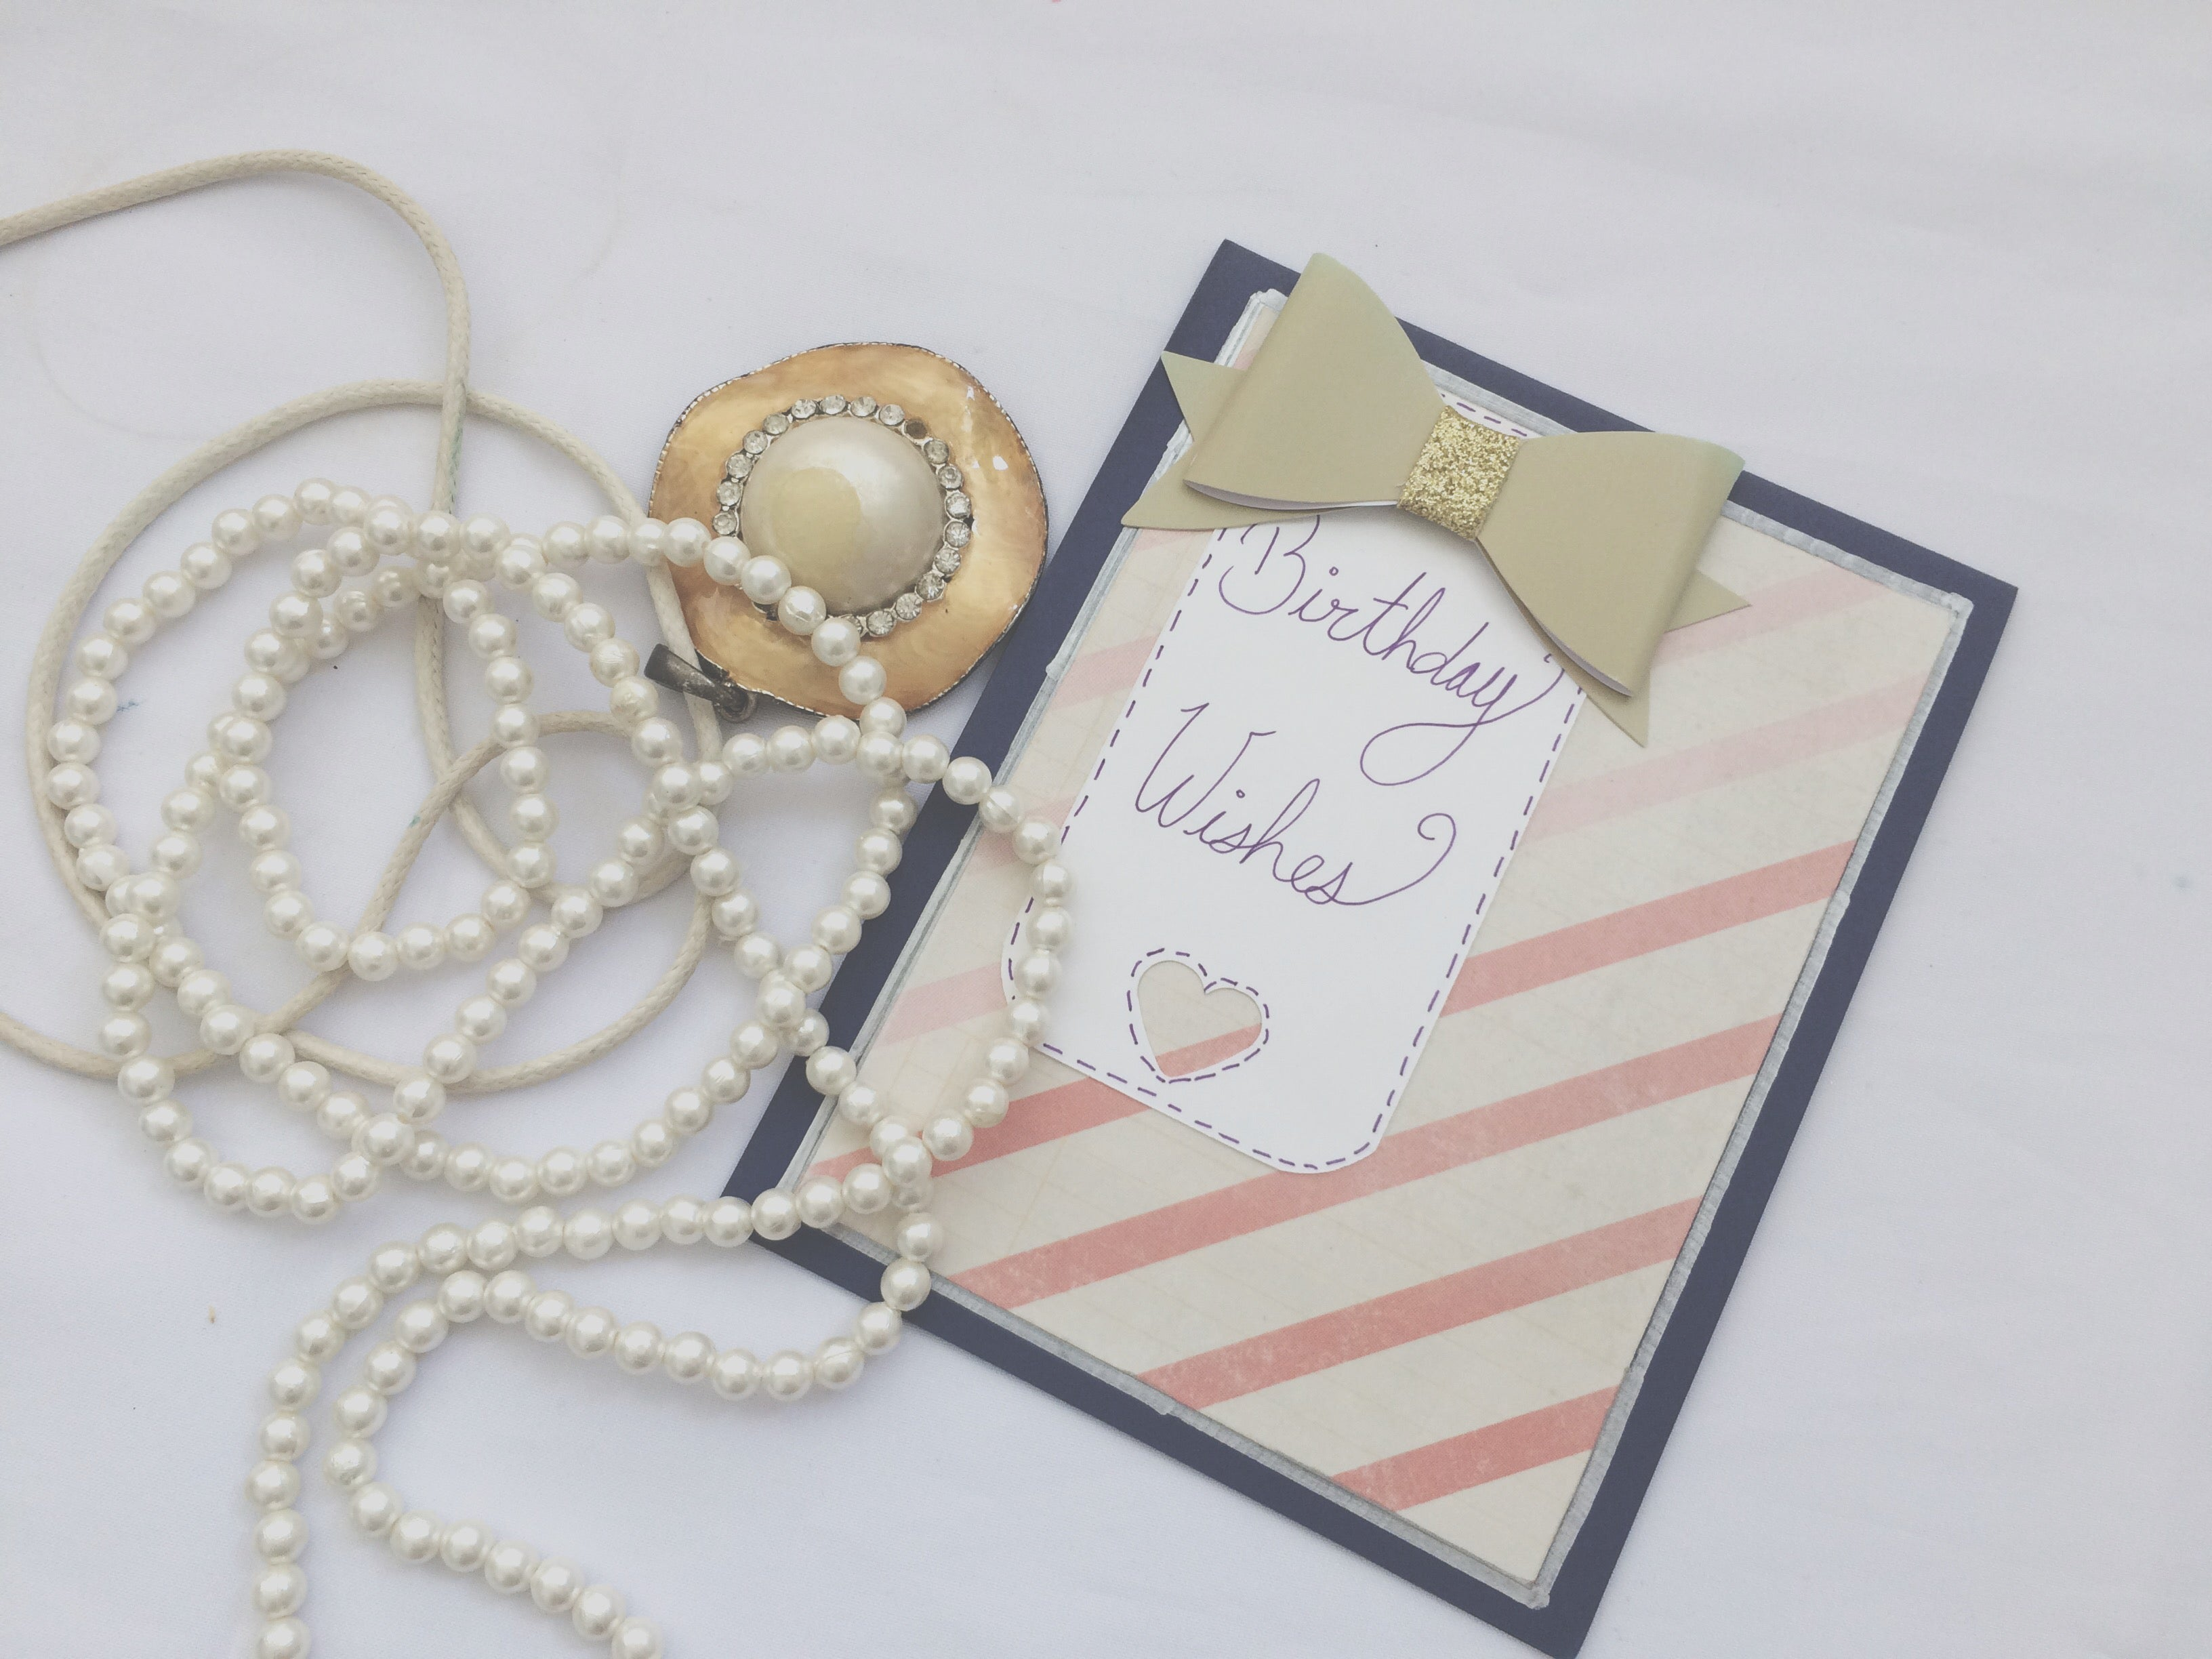 Royal Wish | Handmade Birthday Card | Navy background, pink striped pattern paper in middle, banner on let side with bow on top | Birthday Wishes sentiment on banner | Thoughtfully Handmade